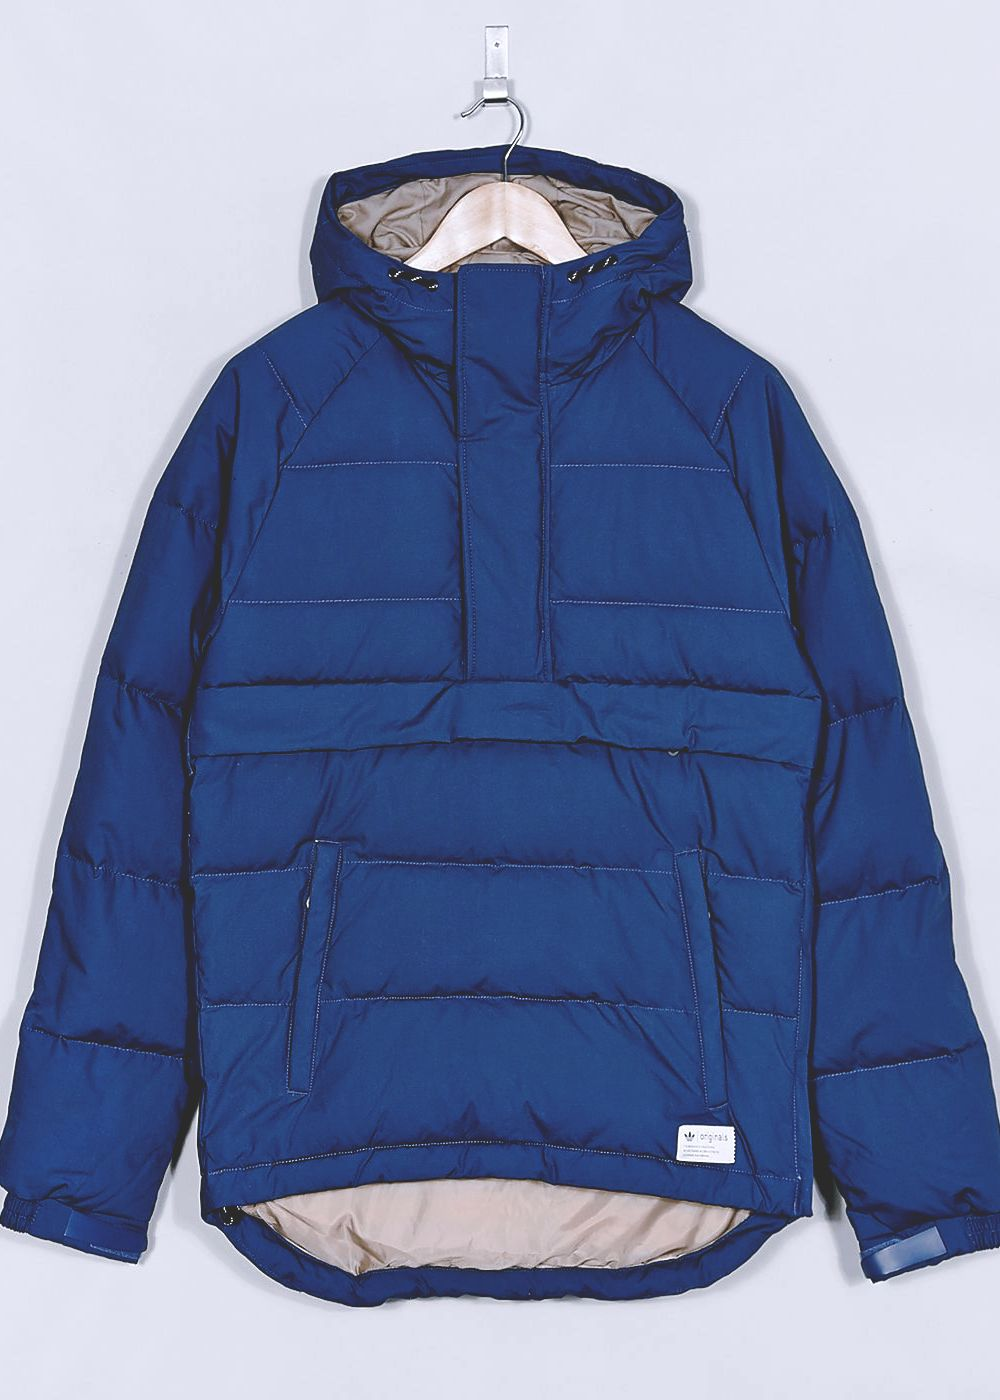 Best North Face Jacket